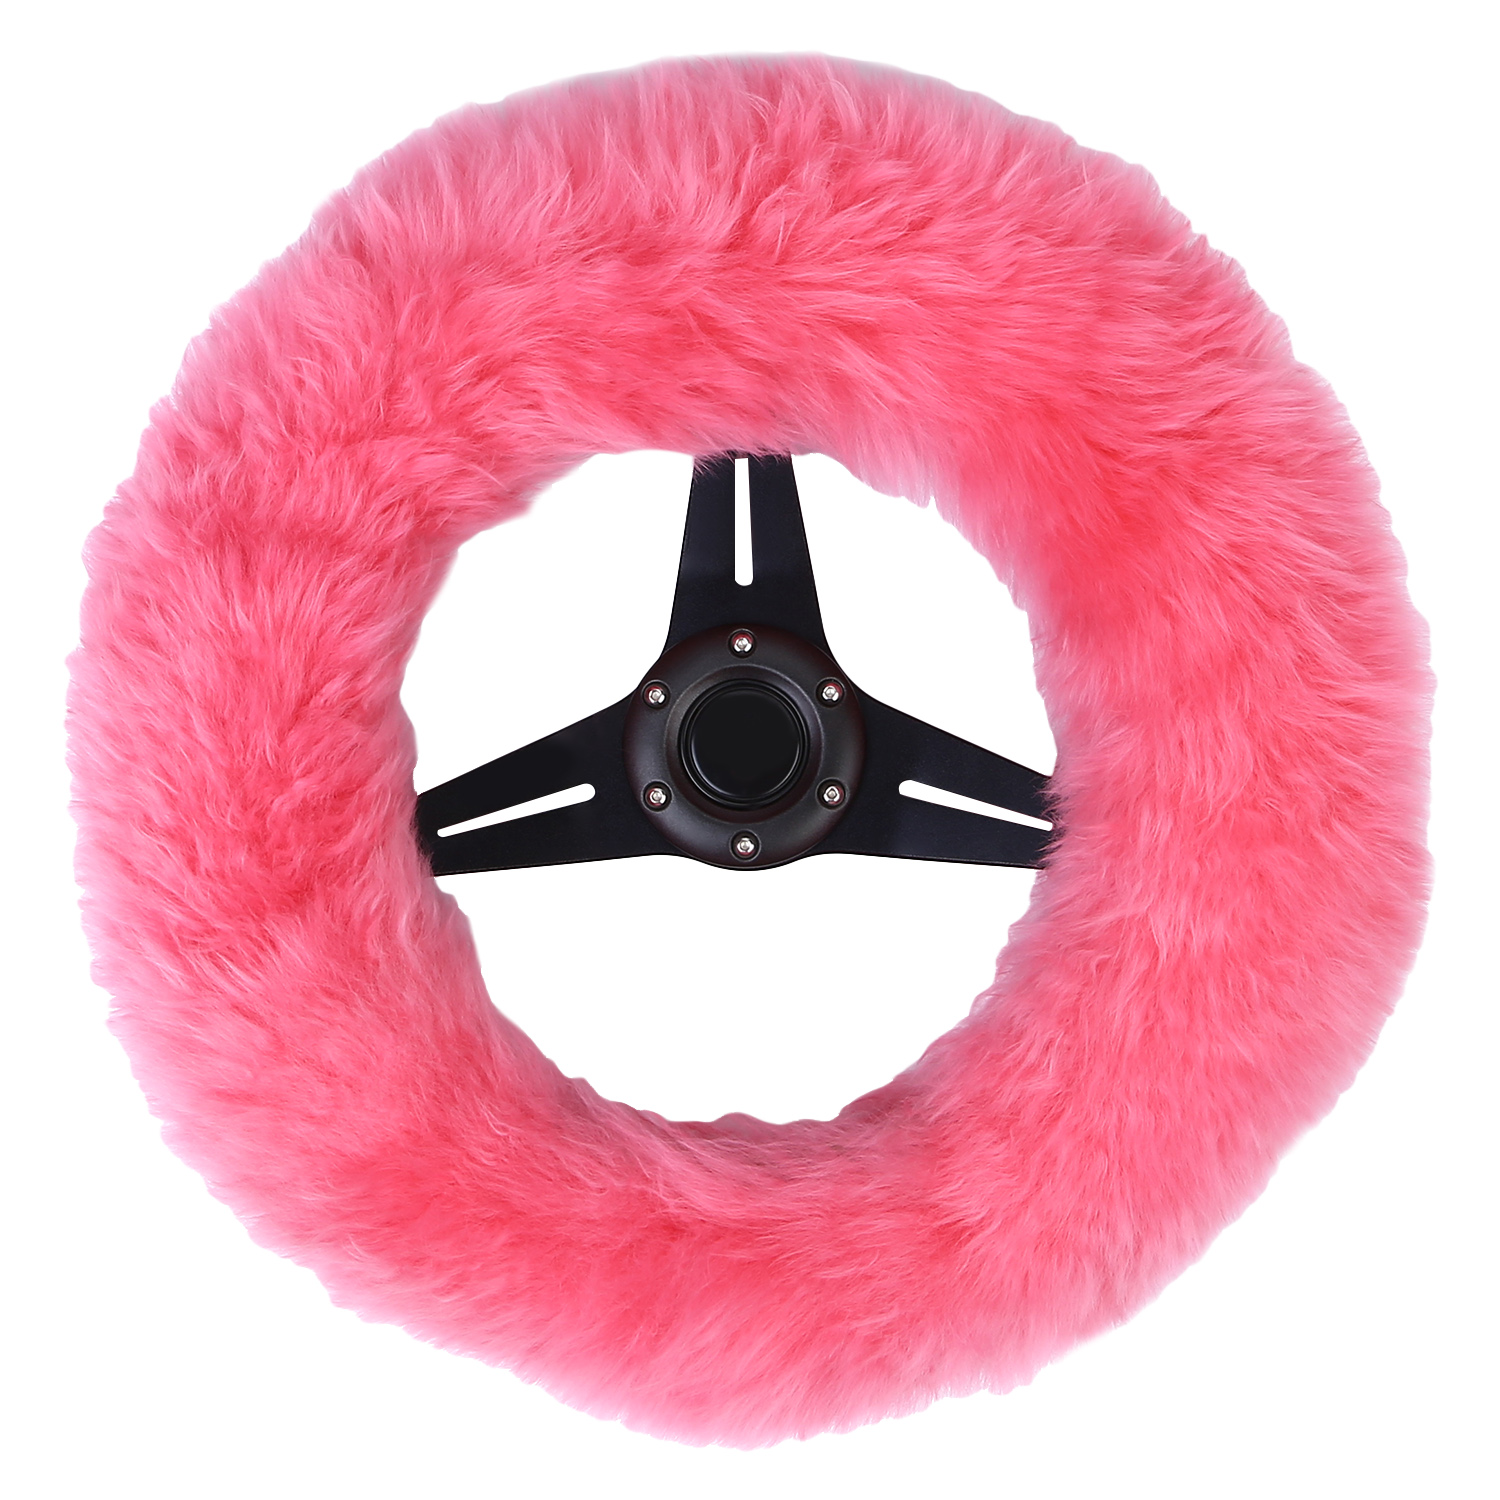 1Pcs Plush Stretch - On Vehicle Steering Wheel Cover Classic Black Car Wheel Protector